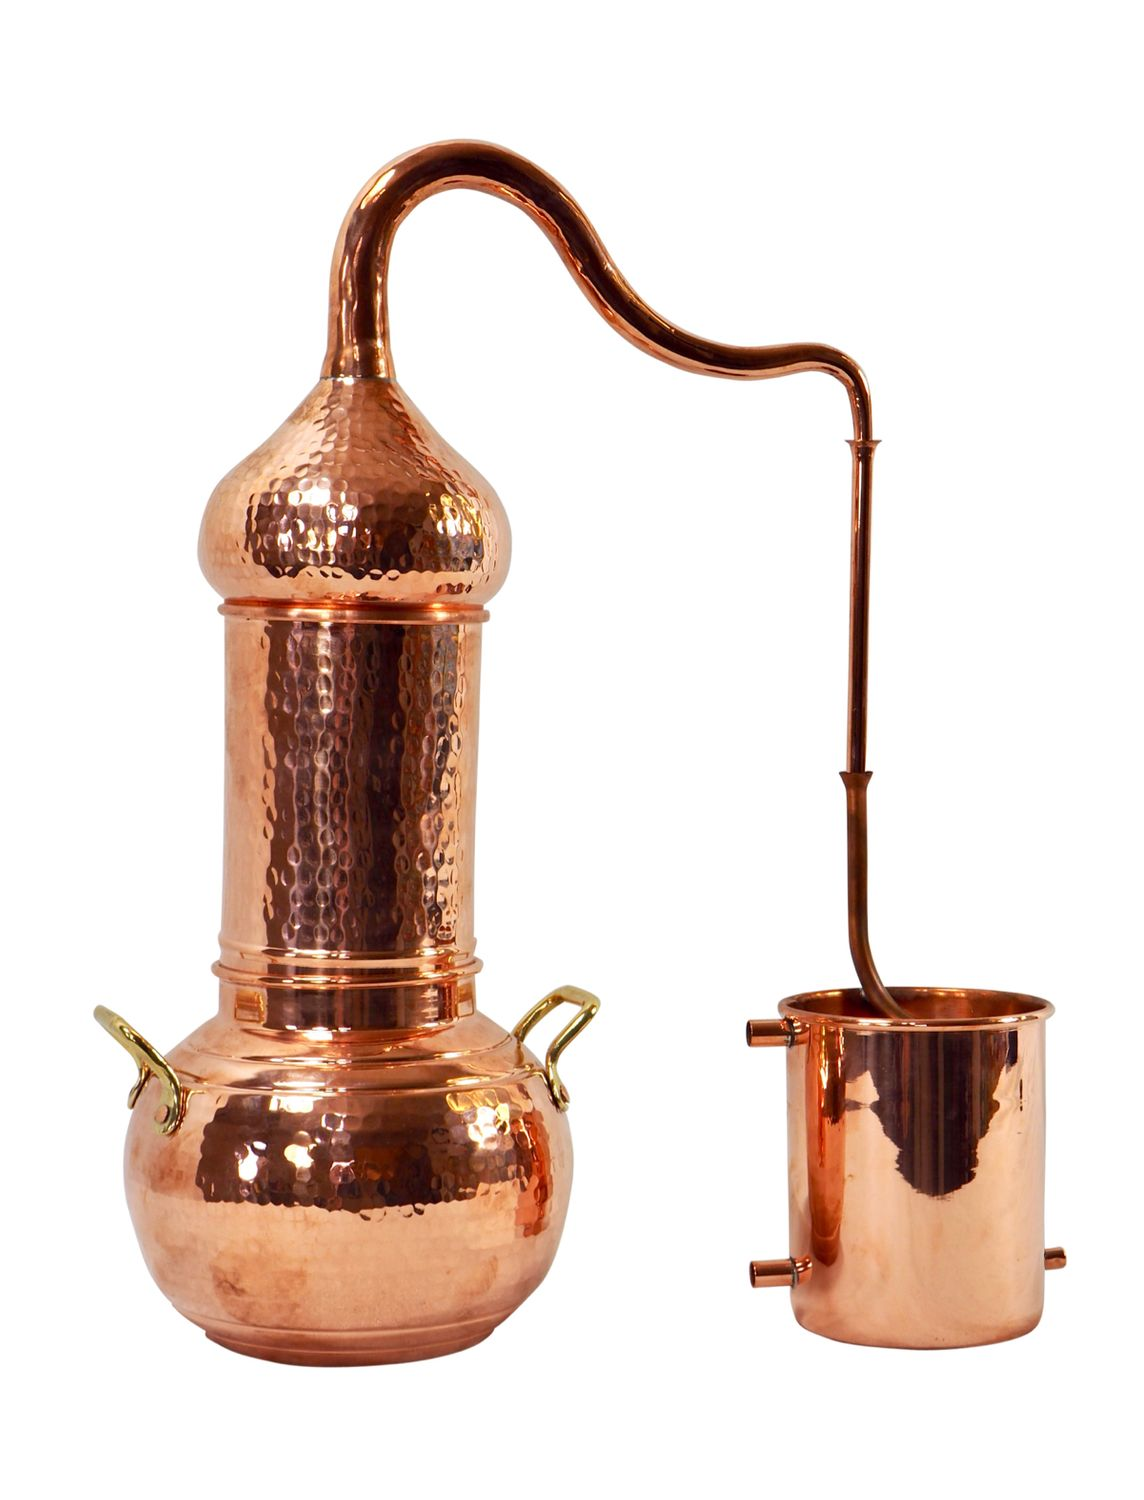 CopperGarden®  copper still  essence  - column still 2 L